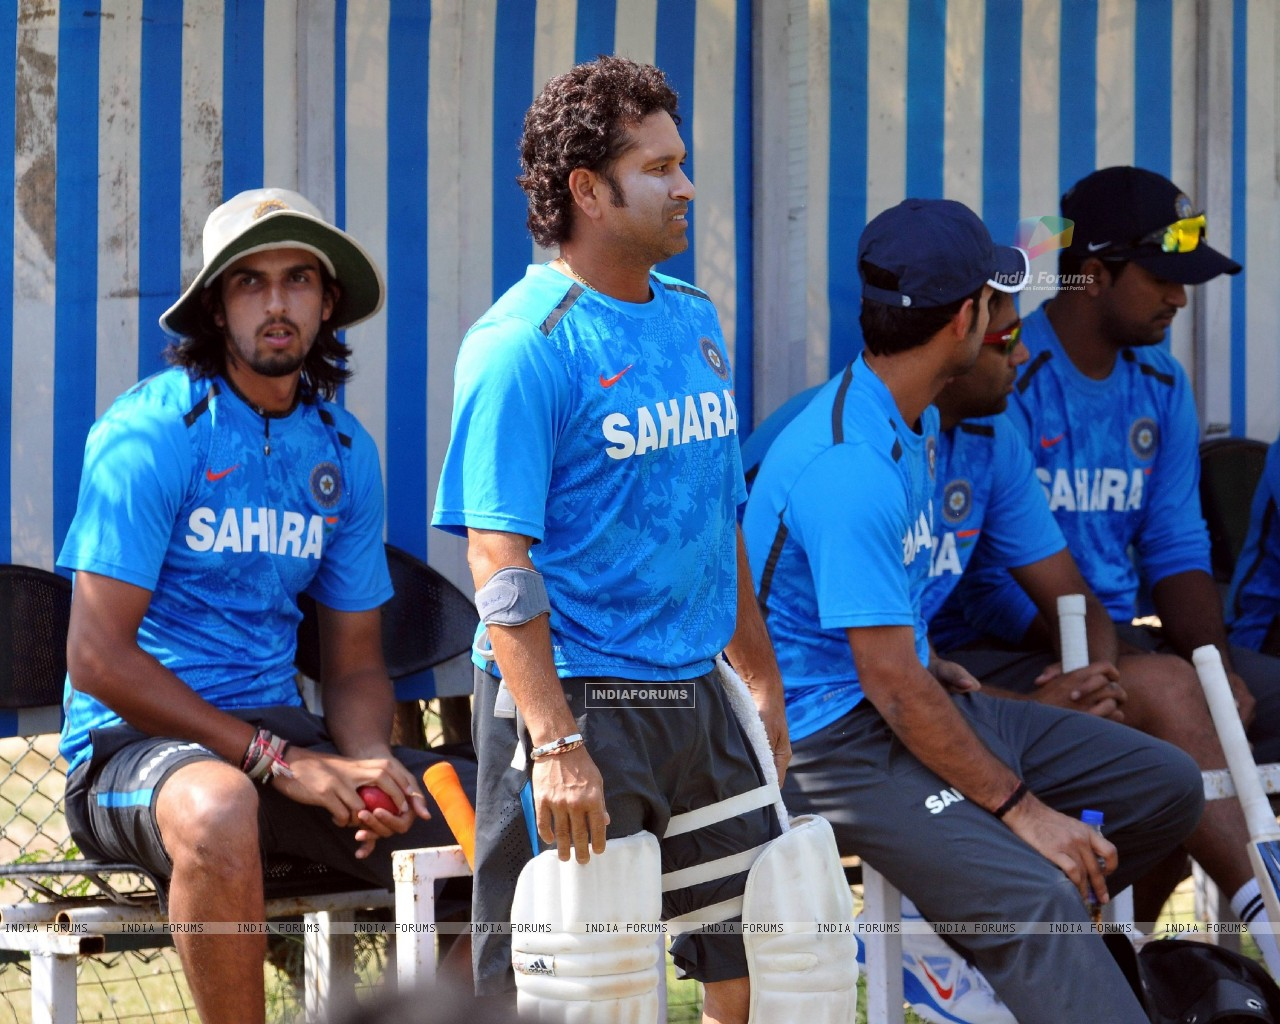 Indian Cricket Team At A Practice Session Before The Second